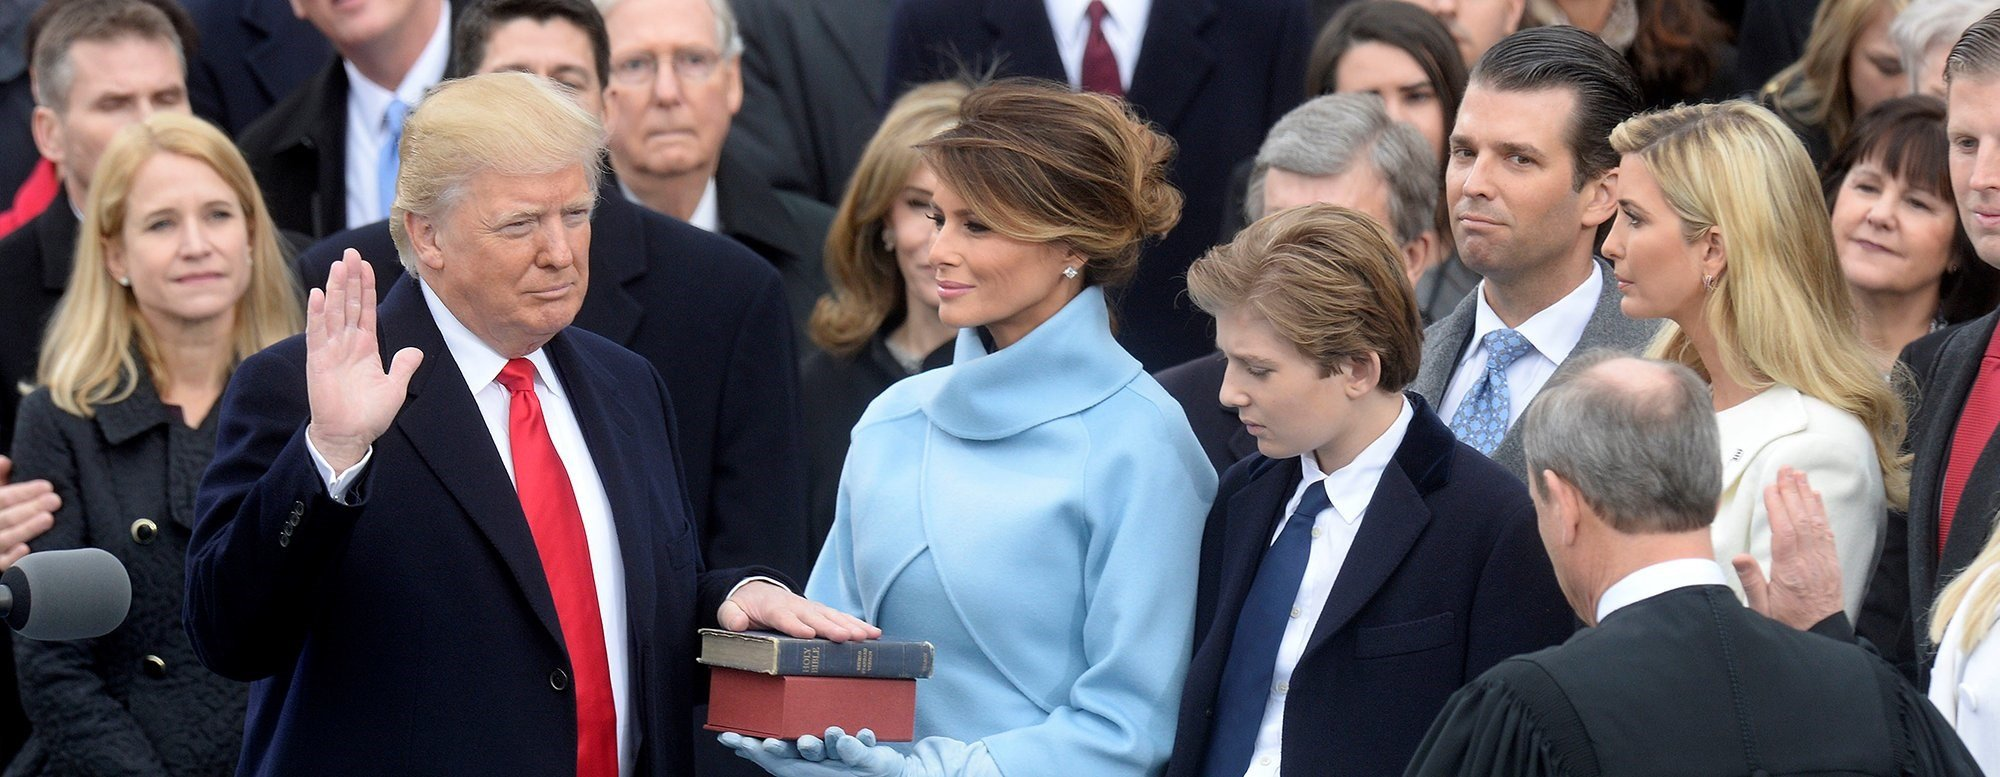 President Donald J. Trump being sworn in as the 45th President of the United States on January 20th, 2017.